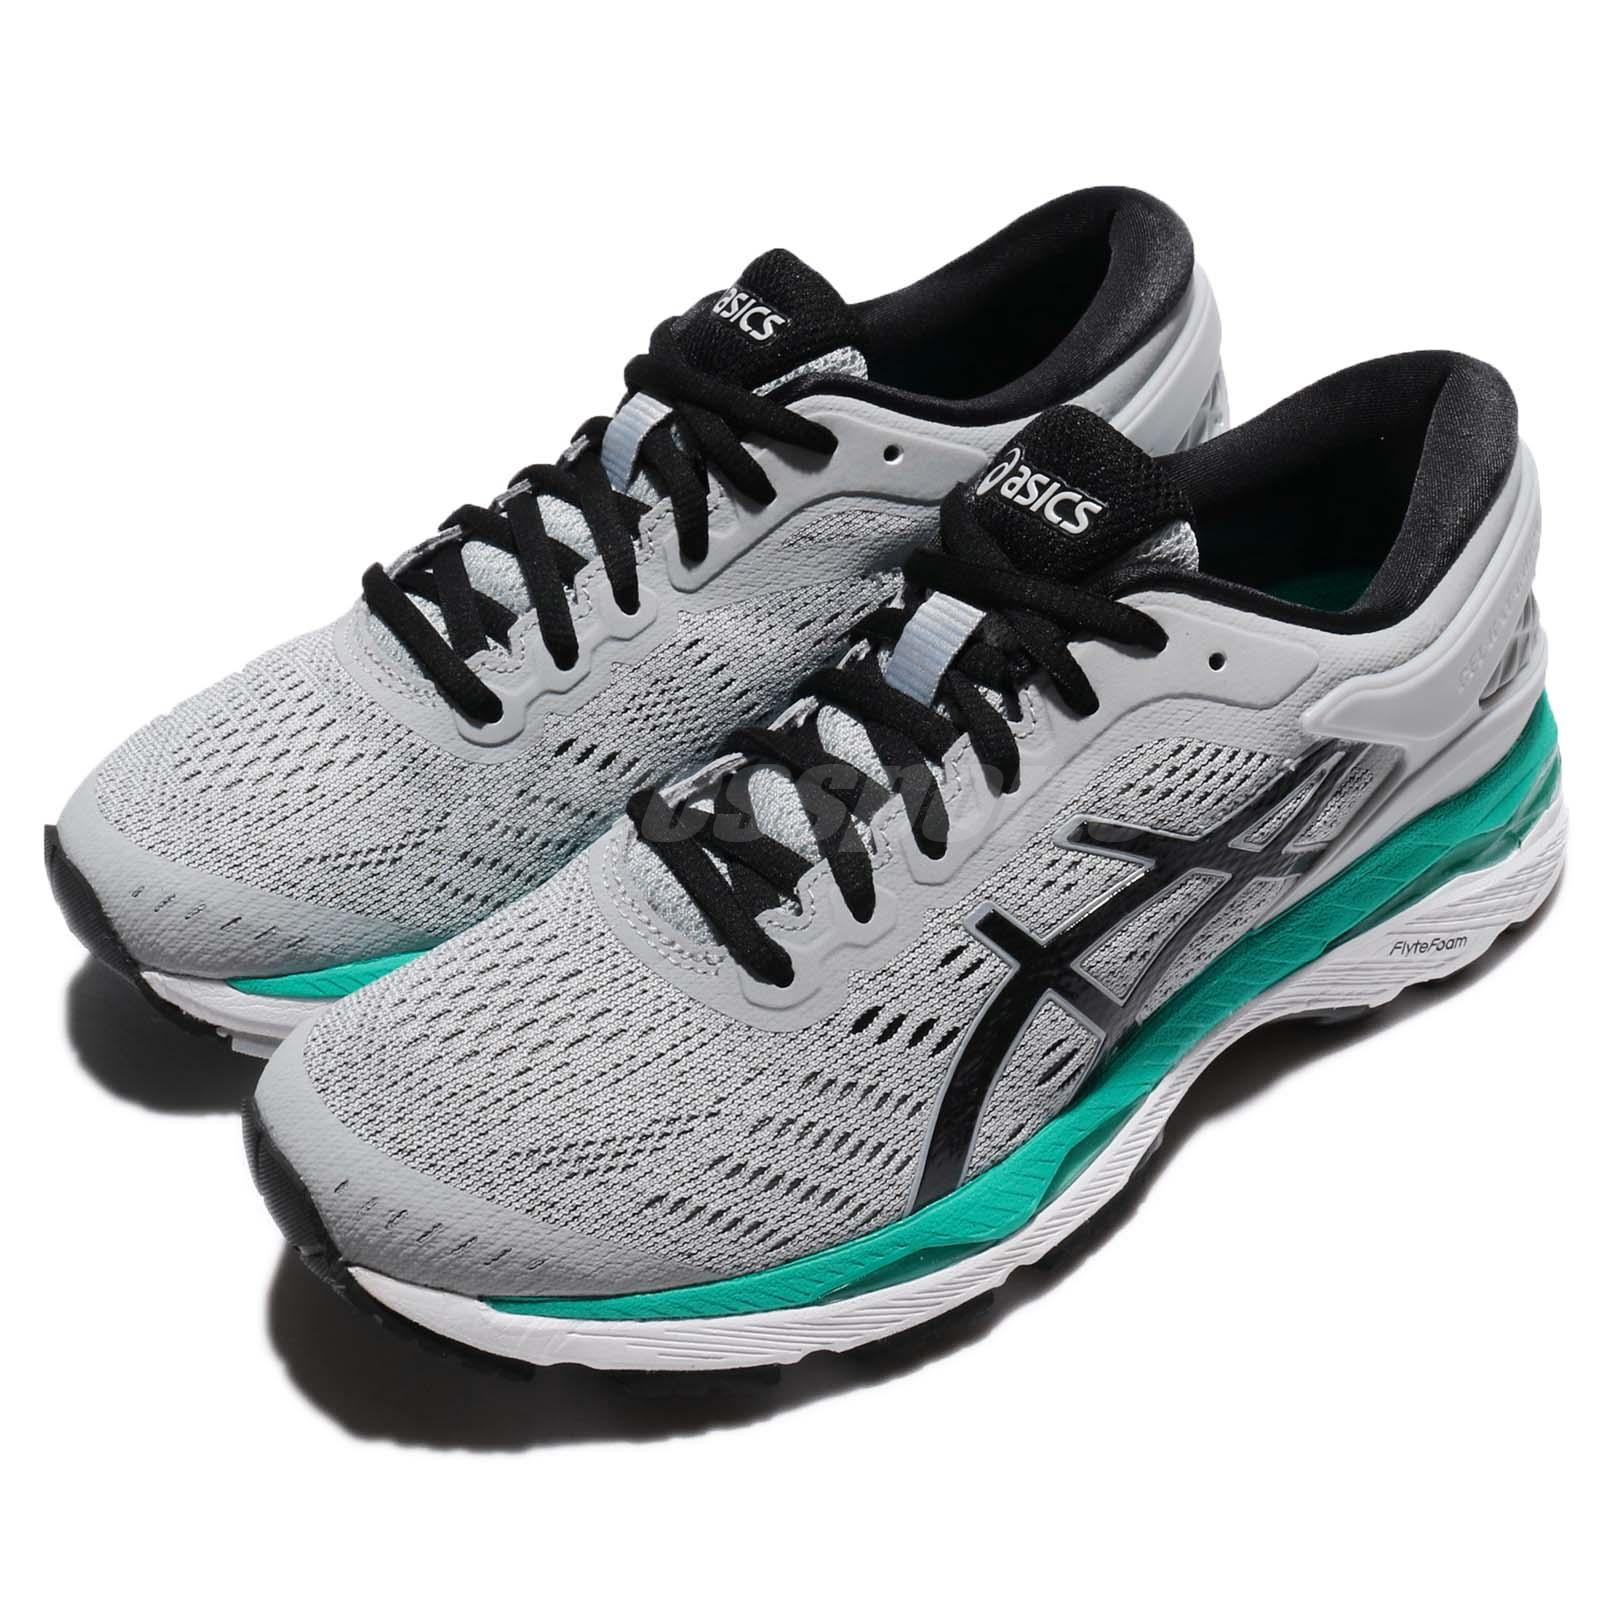 Details about Asics Gel-Kayano 24 Grey Black Green Women Running Shoes  Sneakers T799N-9690 63b1d85f8c